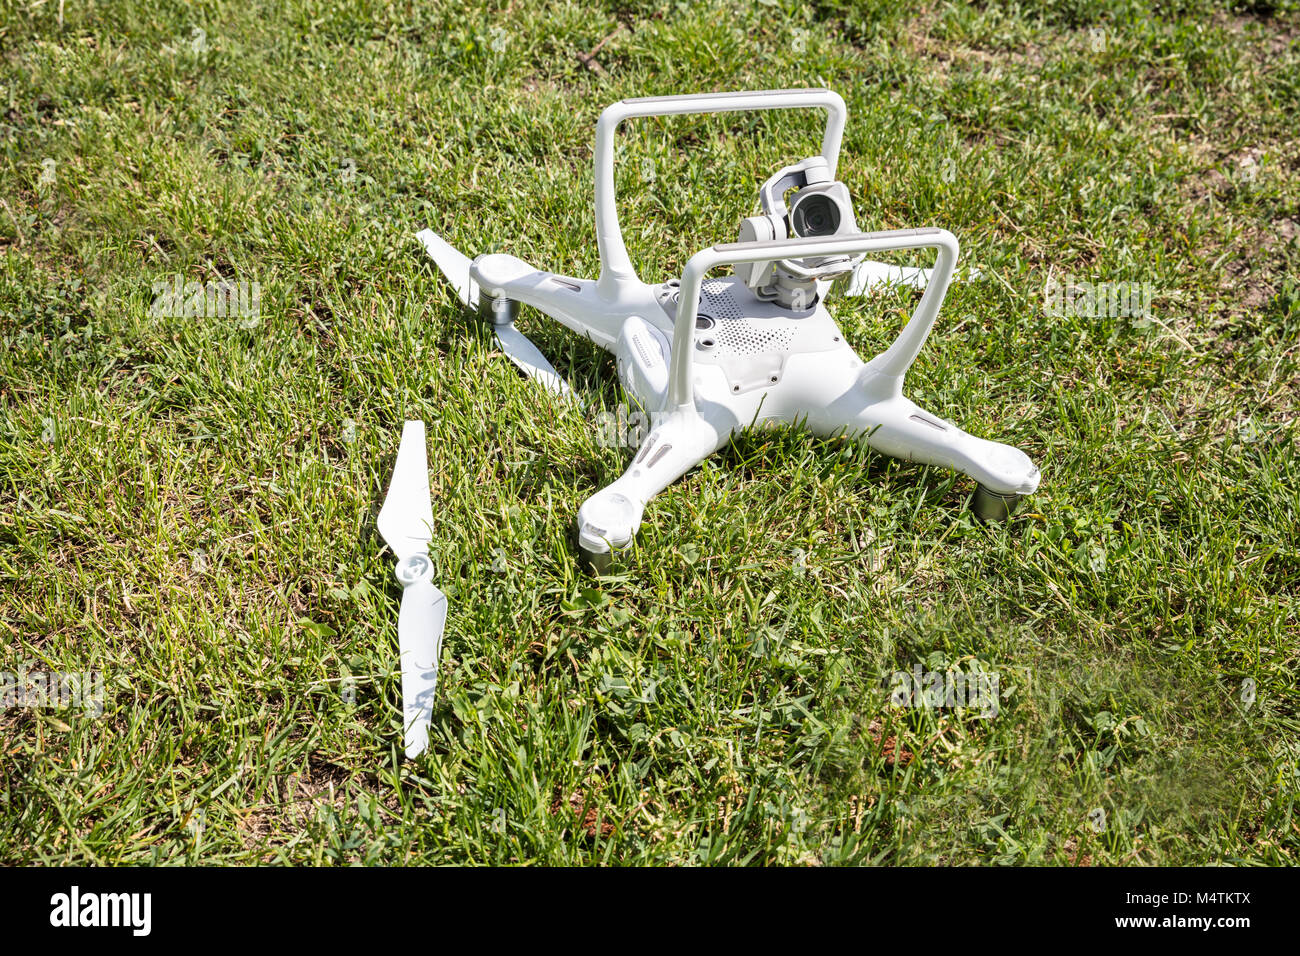 High angle view of broken drone on grassy field - Stock Image